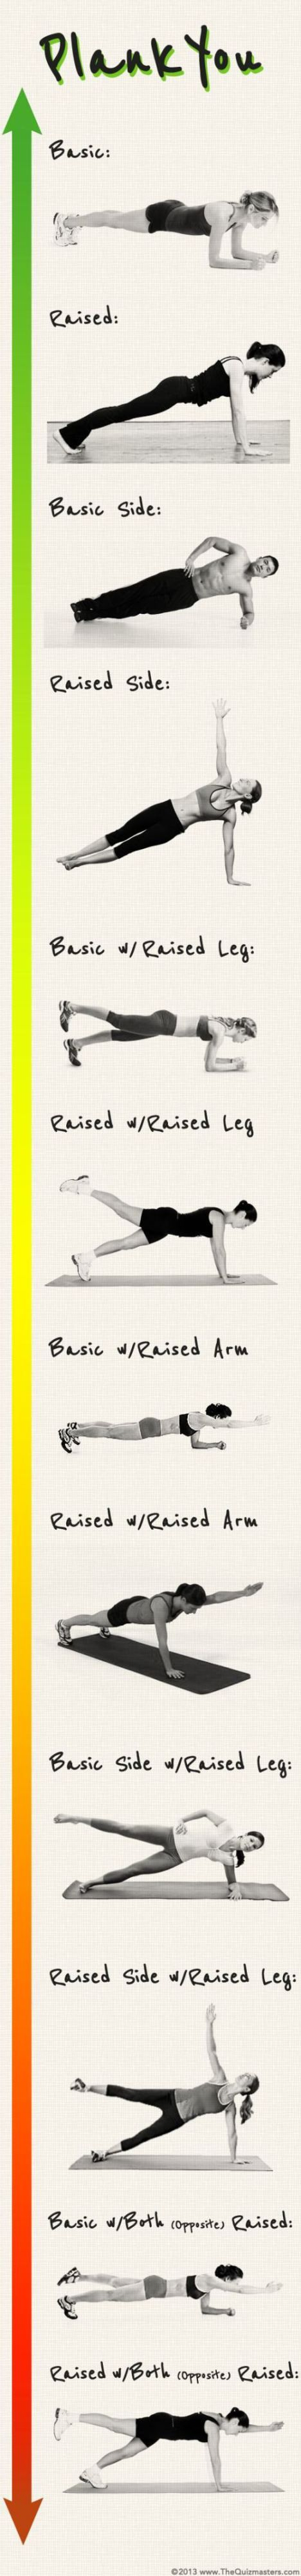 #plank #toning #abs